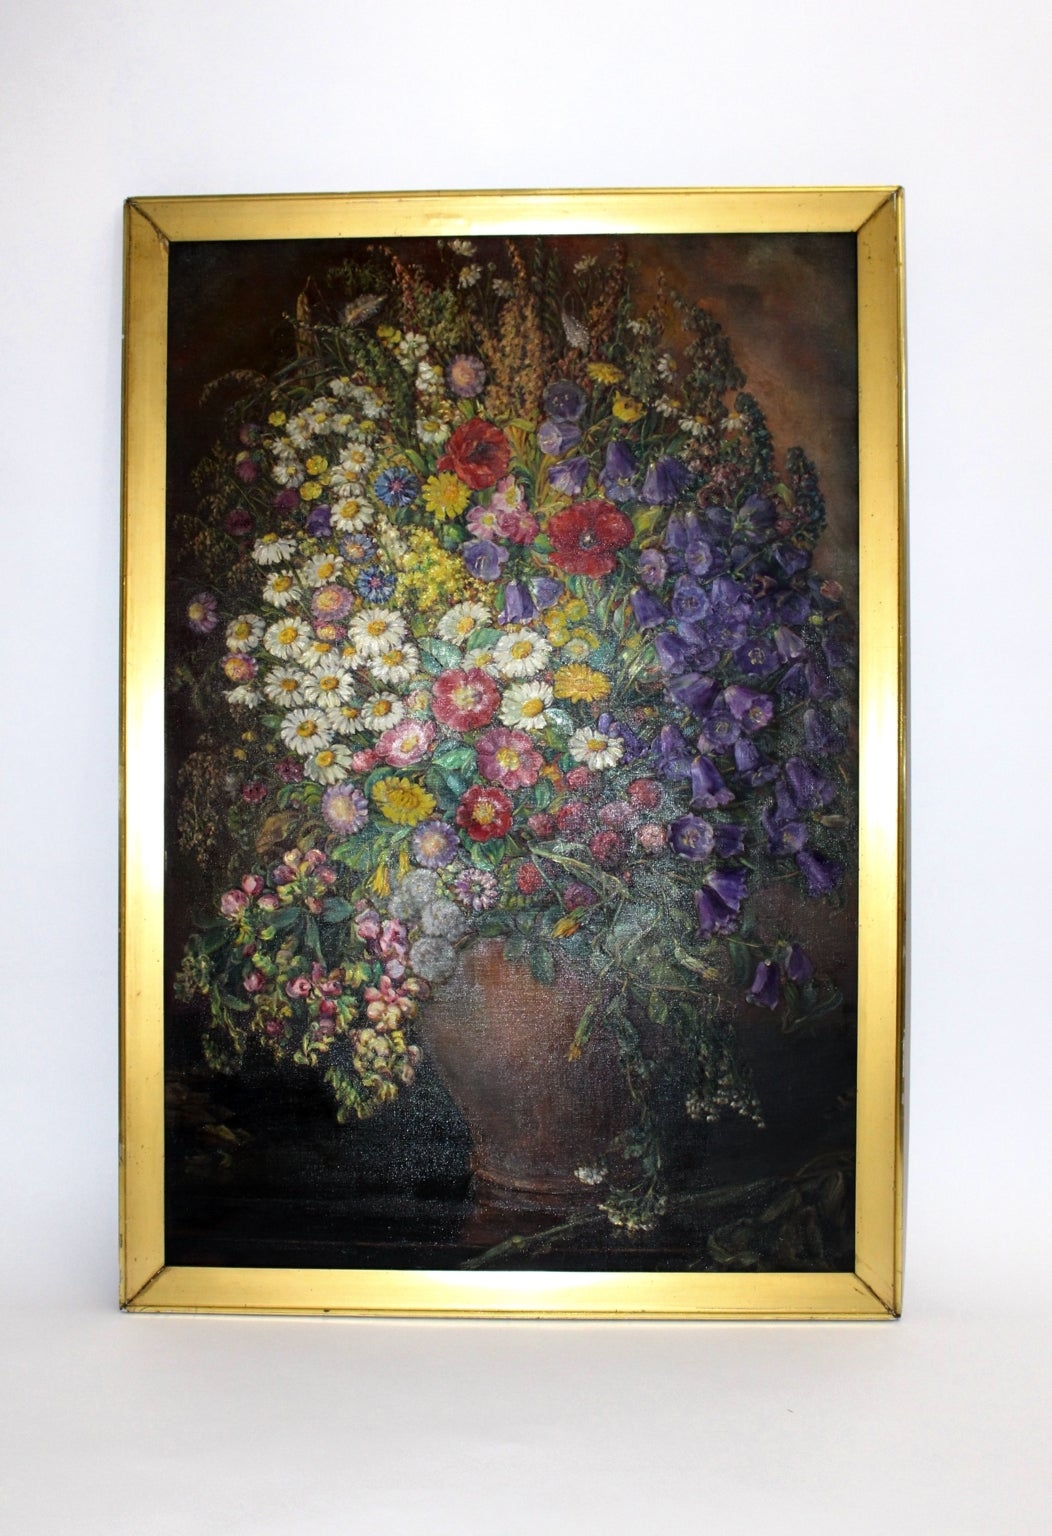 Mid-20th Century Art Deco Vintage Painting Oil on Canvas Field Flowers by Emil Fiala 1933, Vienna For Sale